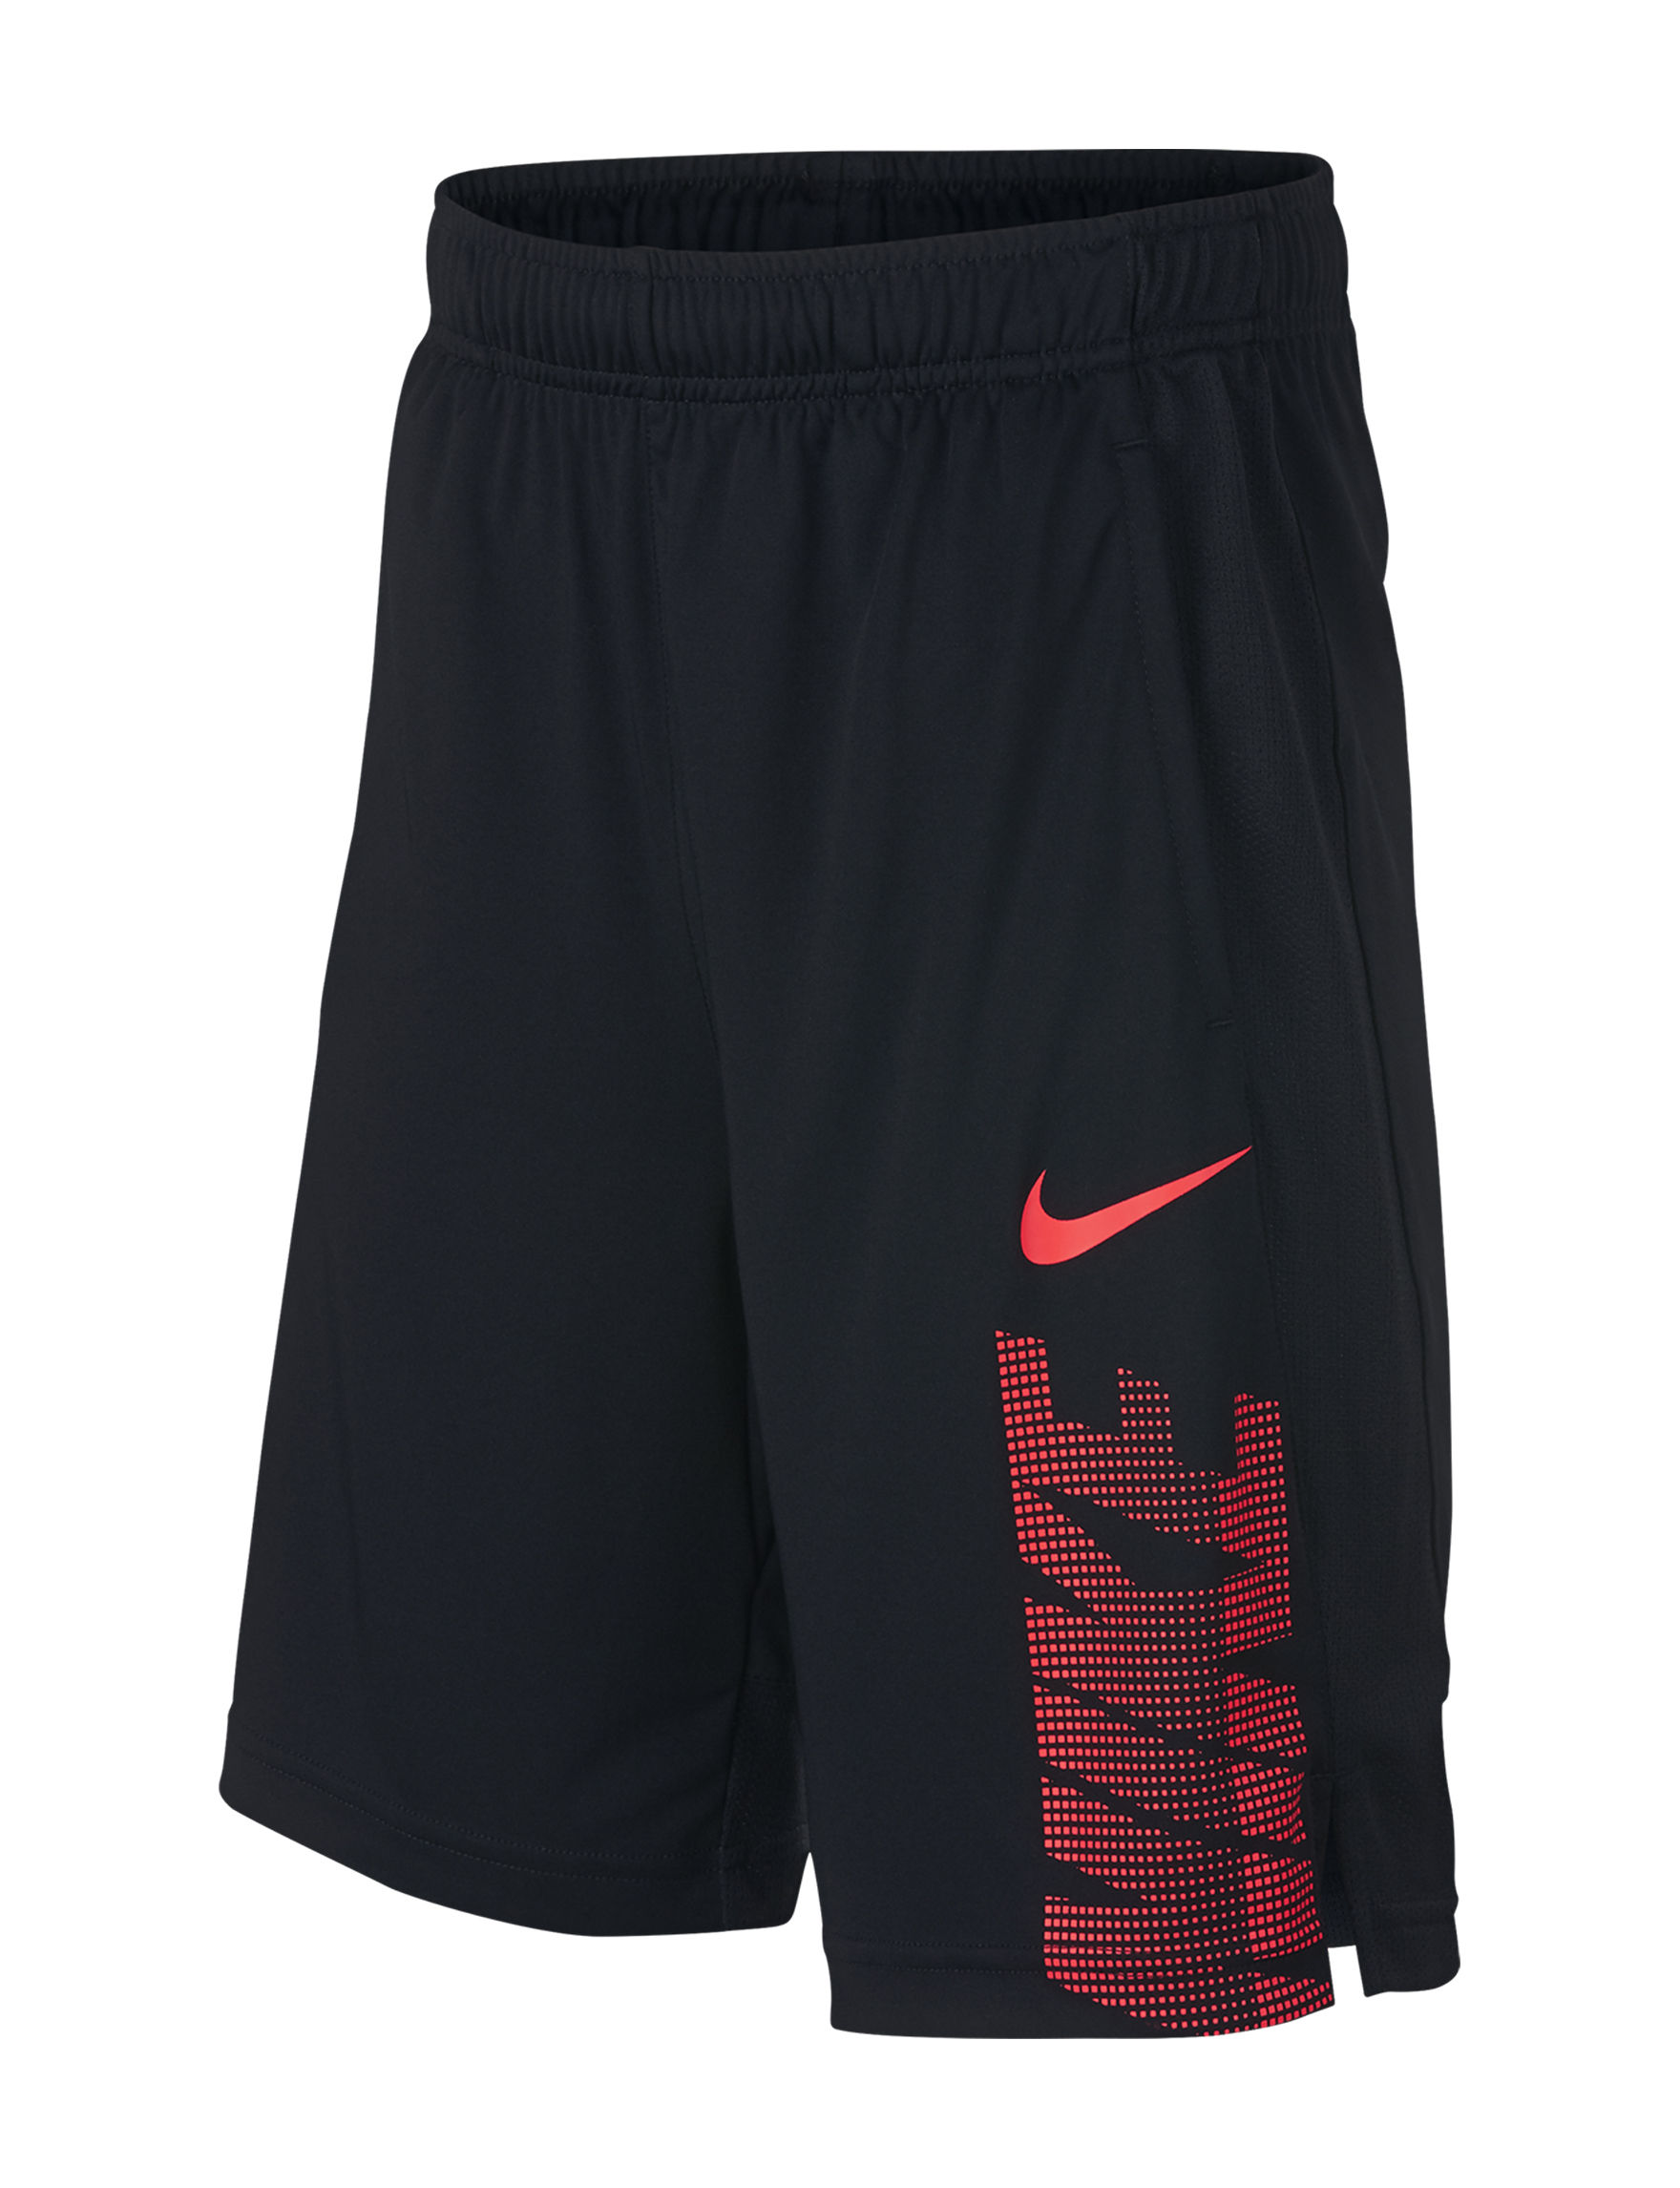 Nike Black / Red Relaxed